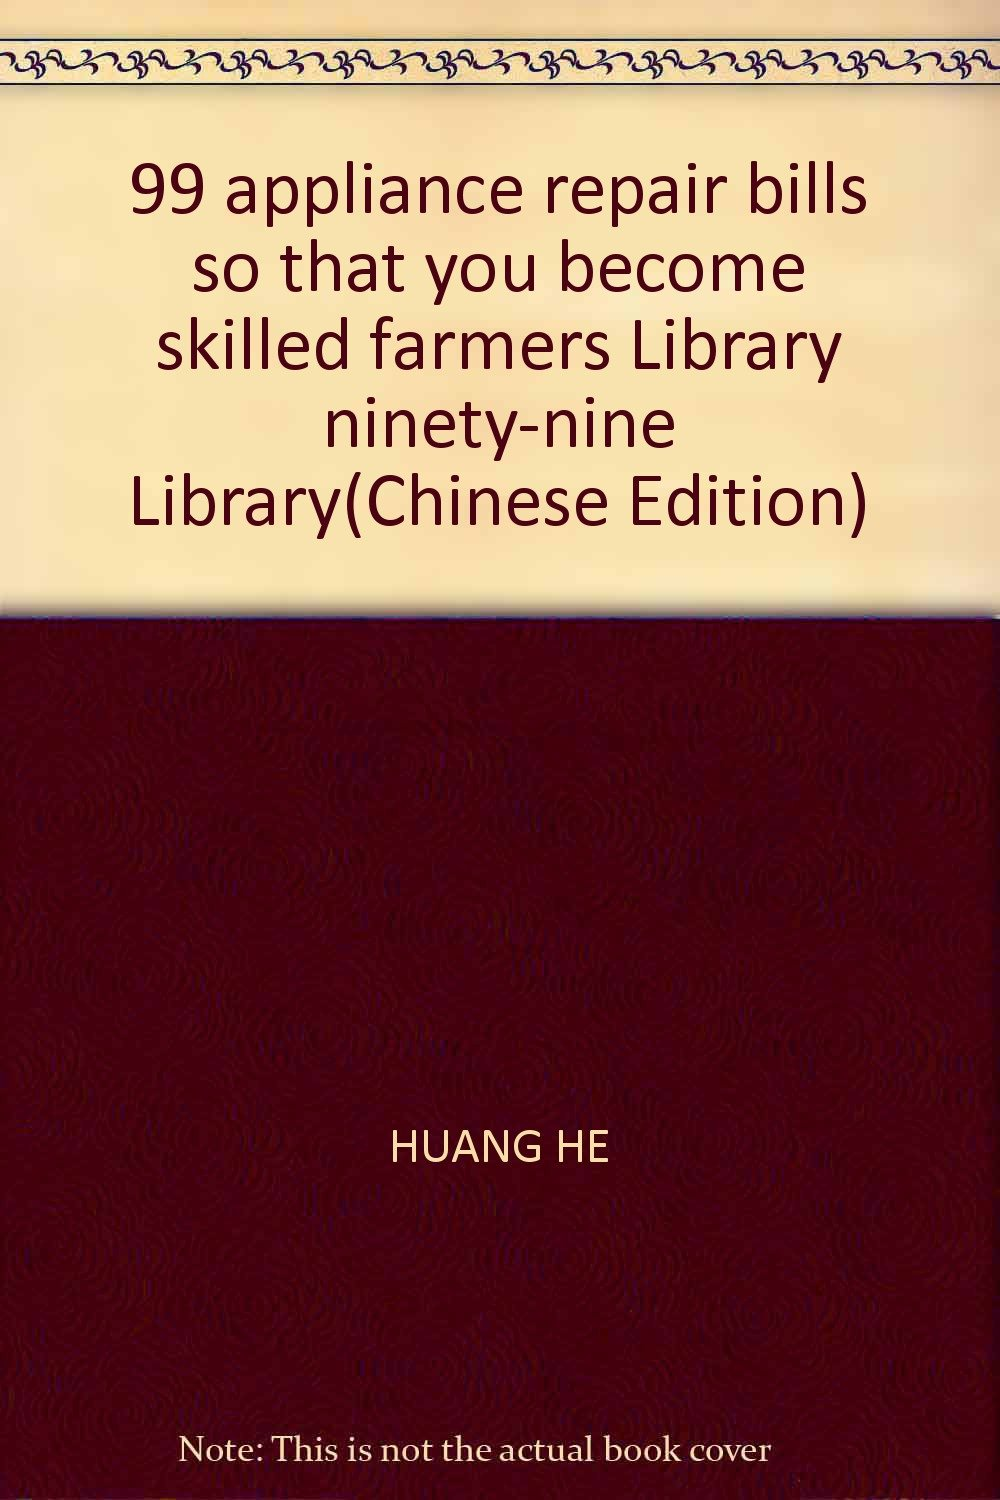 99 appliance repair bills so that you become skilled farmers Library ninety-nine Library(Chinese Edition) PDF